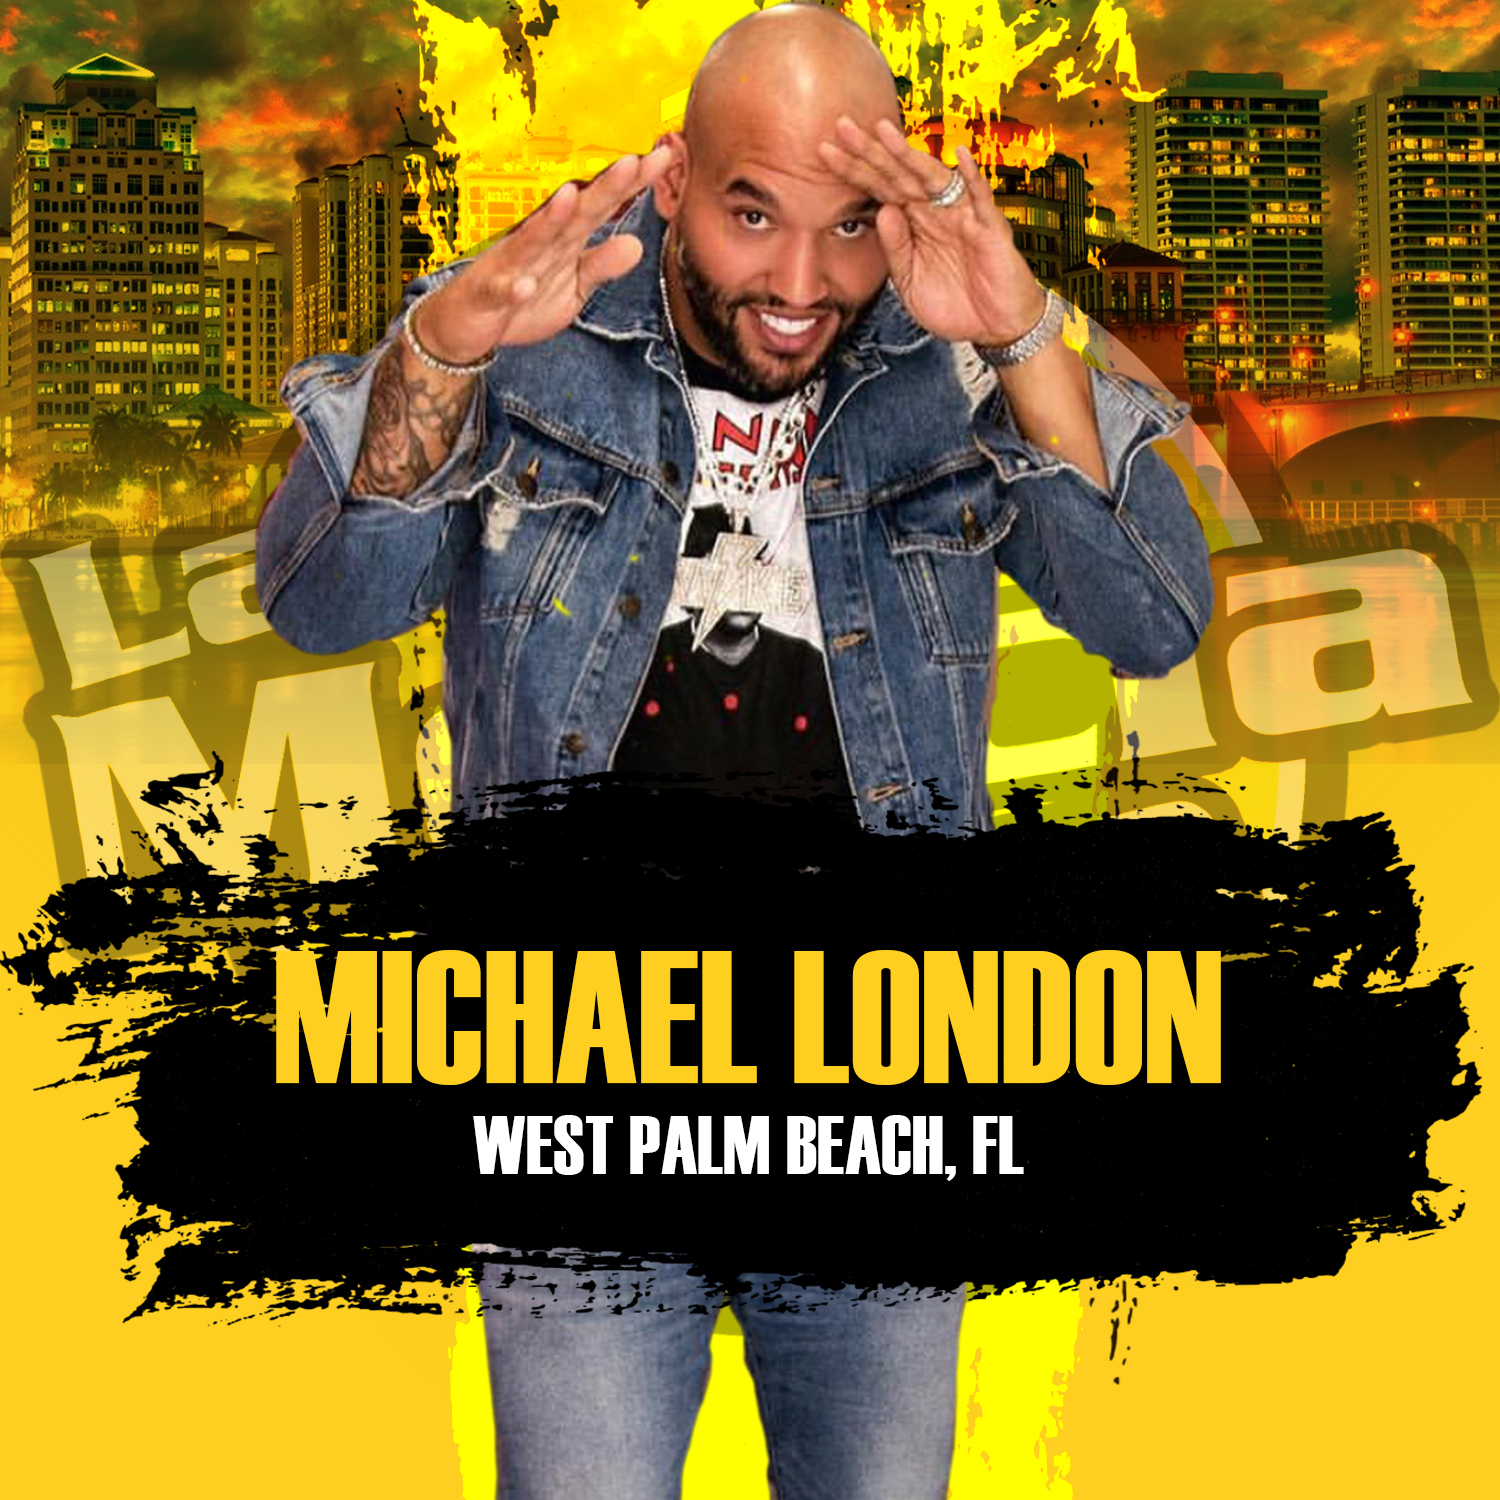 Michael-london-wpb